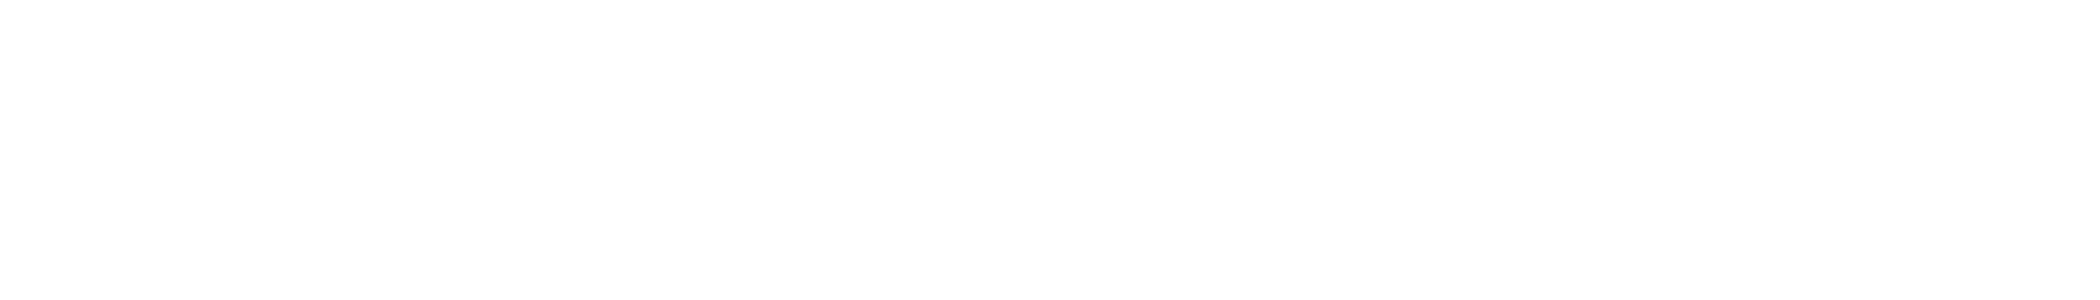 Order of Merchants